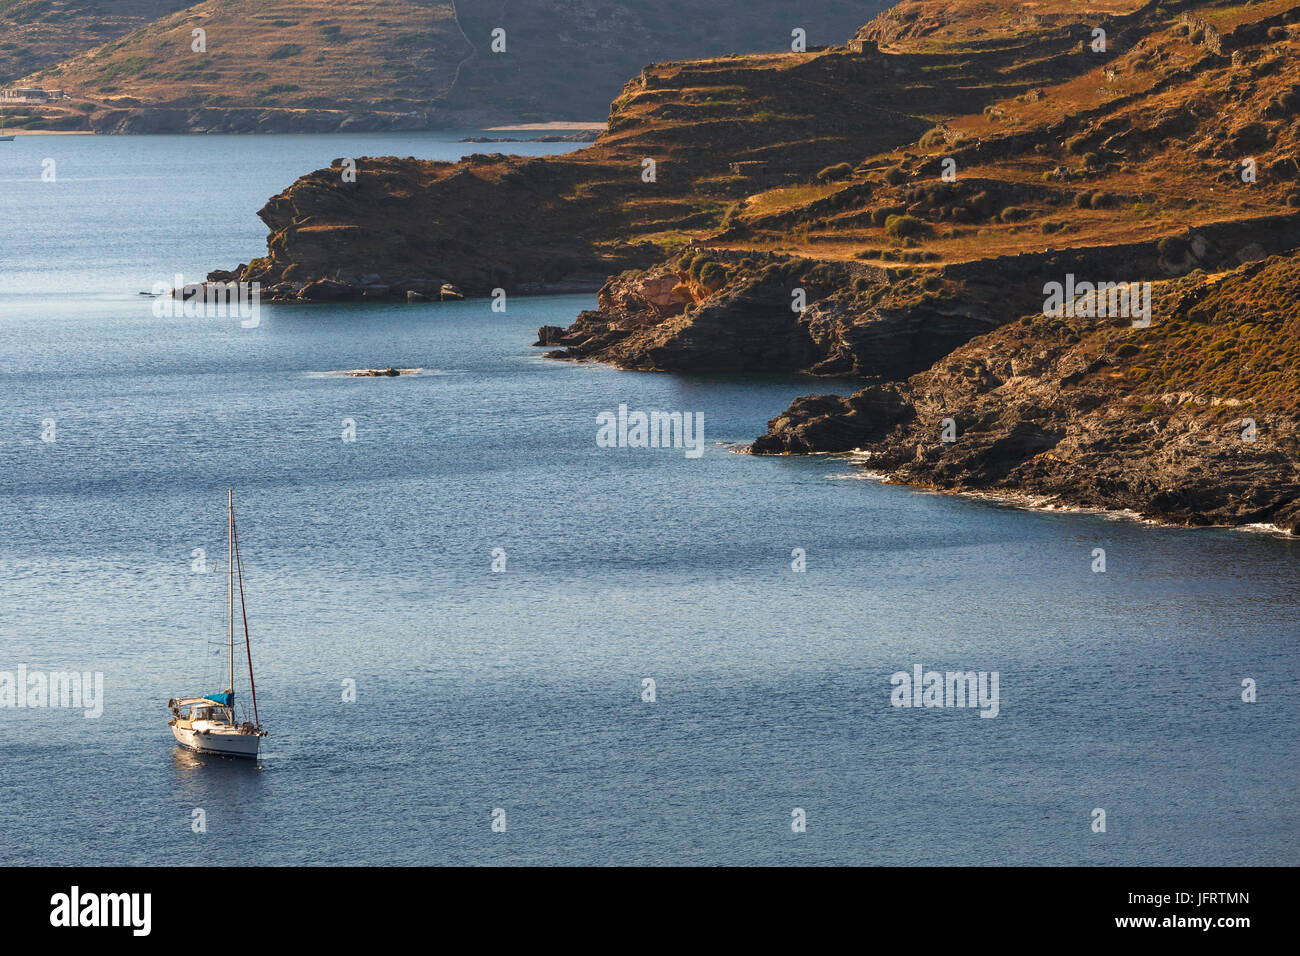 Sail boat at the coast of Kythnos island in Greece. - Stock Image